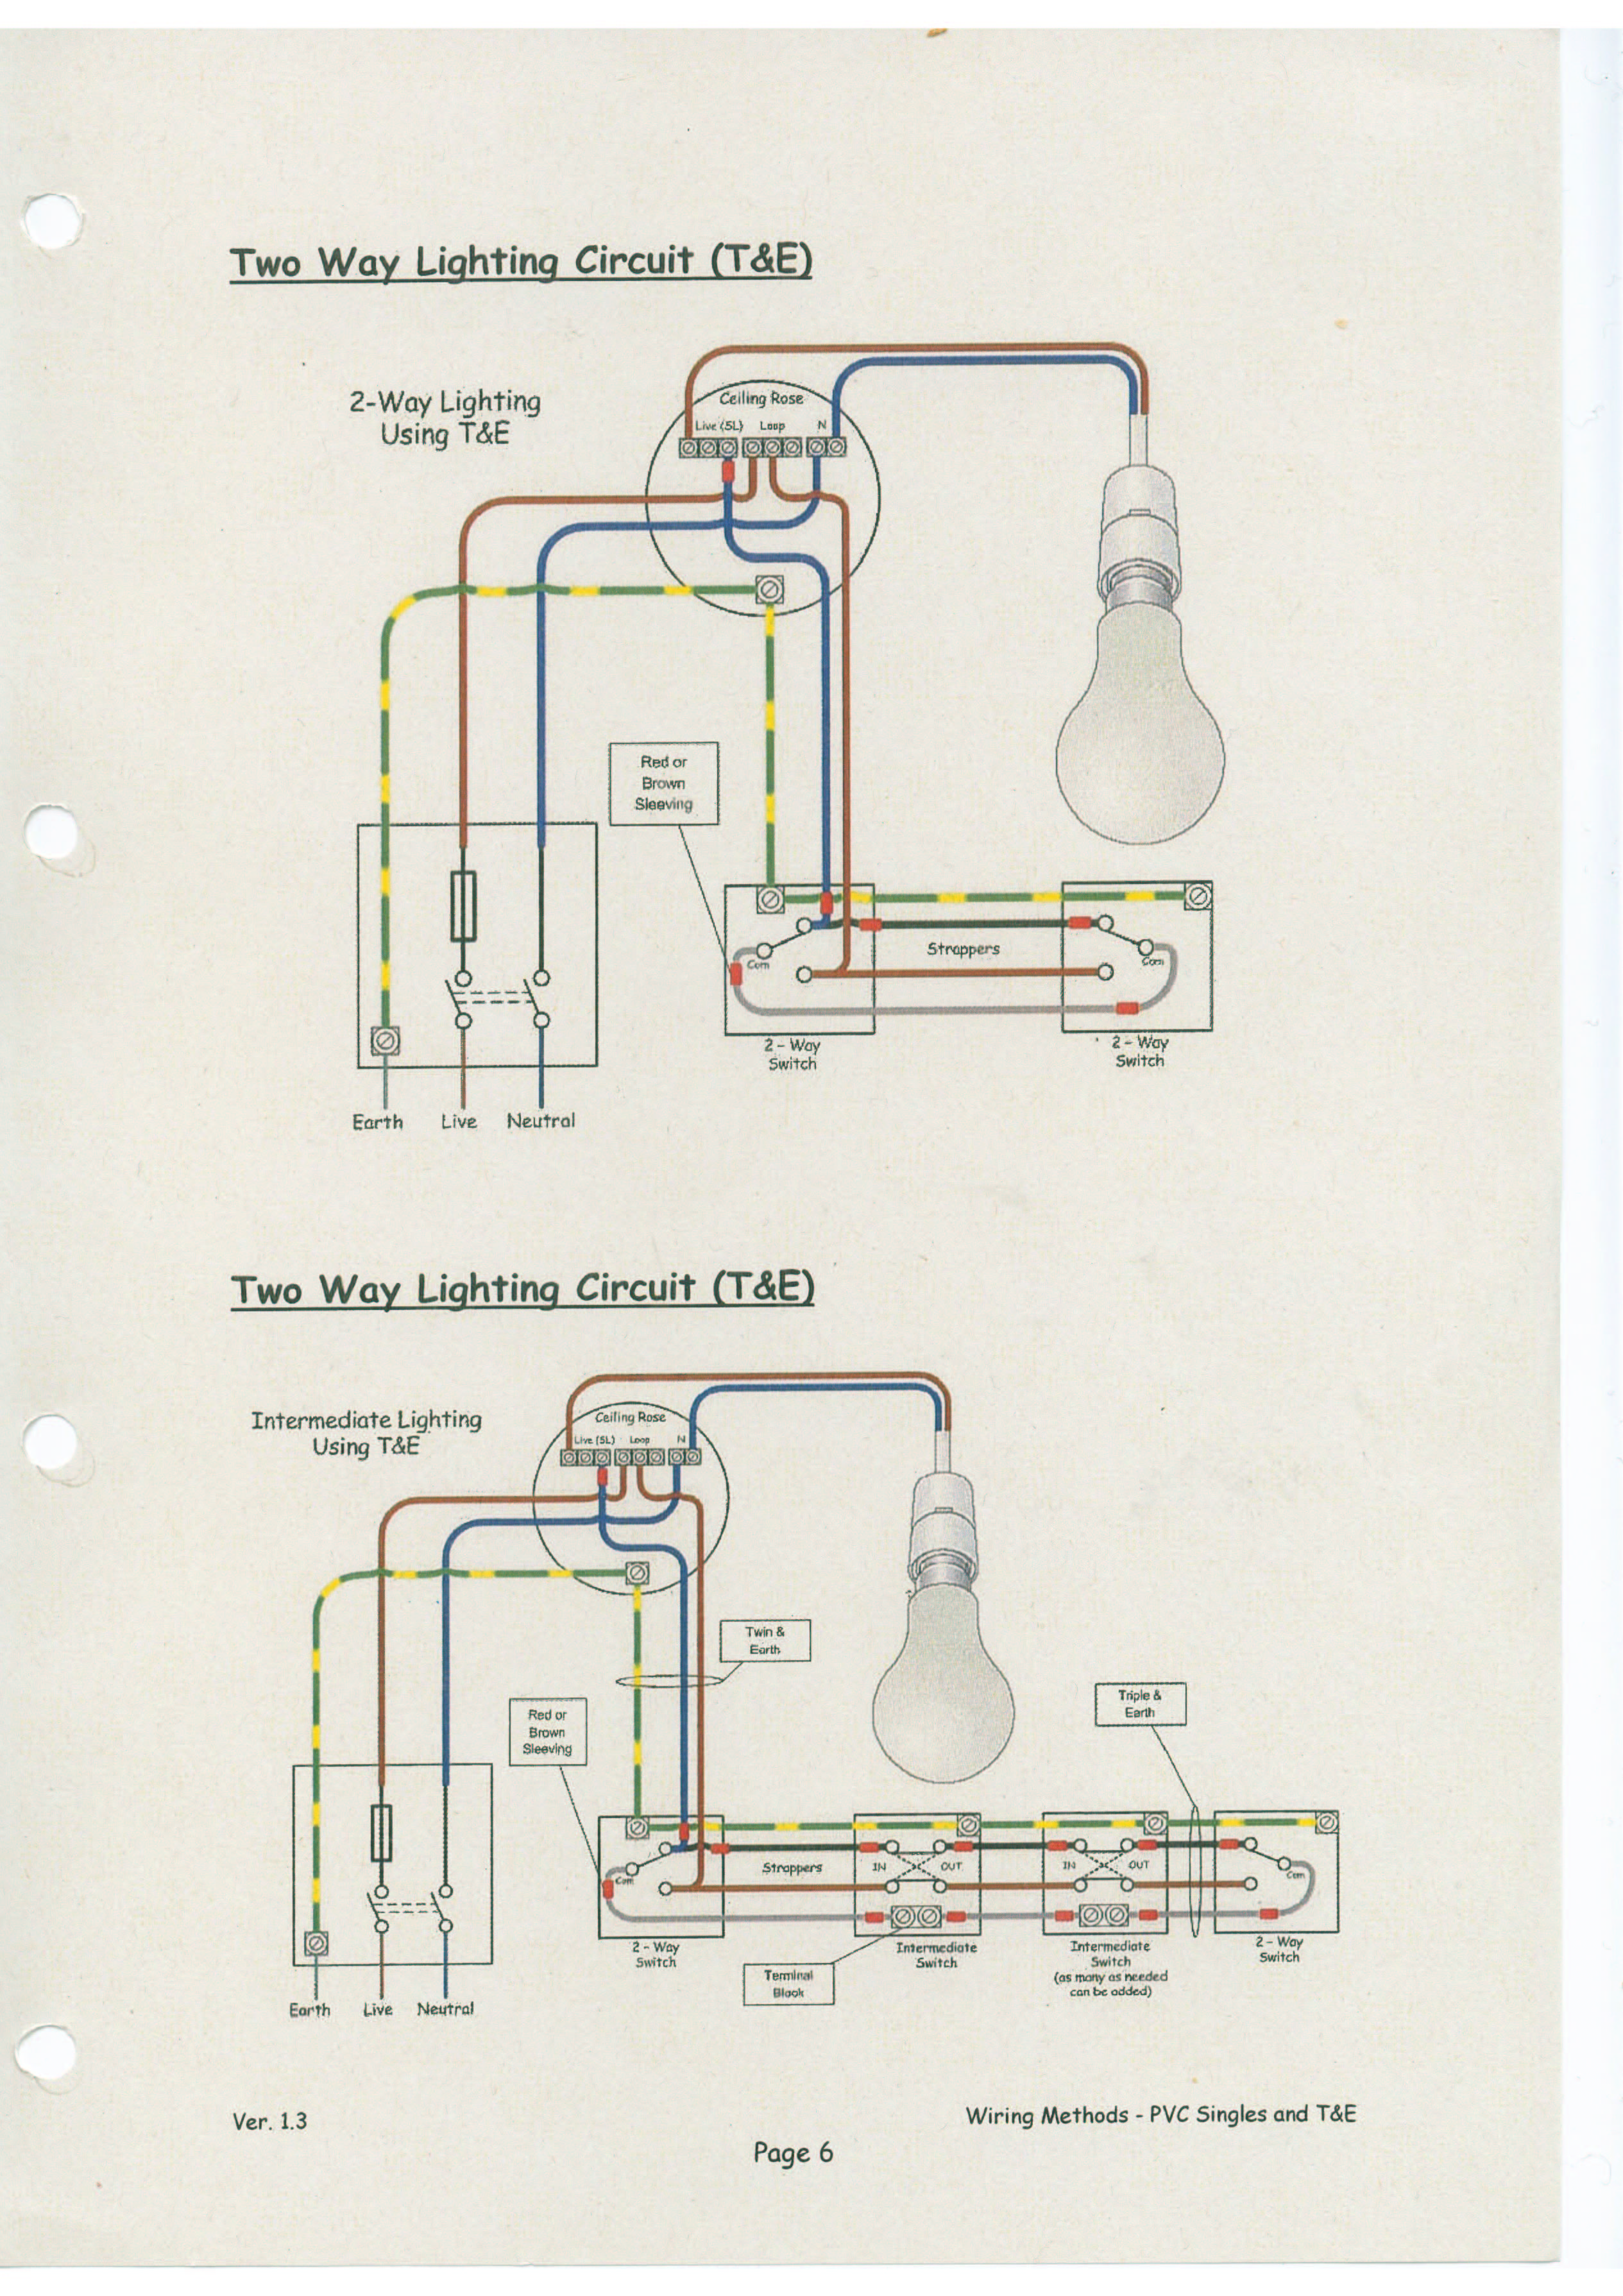 Oh The Irony Annoying Page 2 Electrics Kitchen Intermediate Lighting Circuit Diagram P6thumbe089d90a0715a8ddfc6ca8bc21961ba3